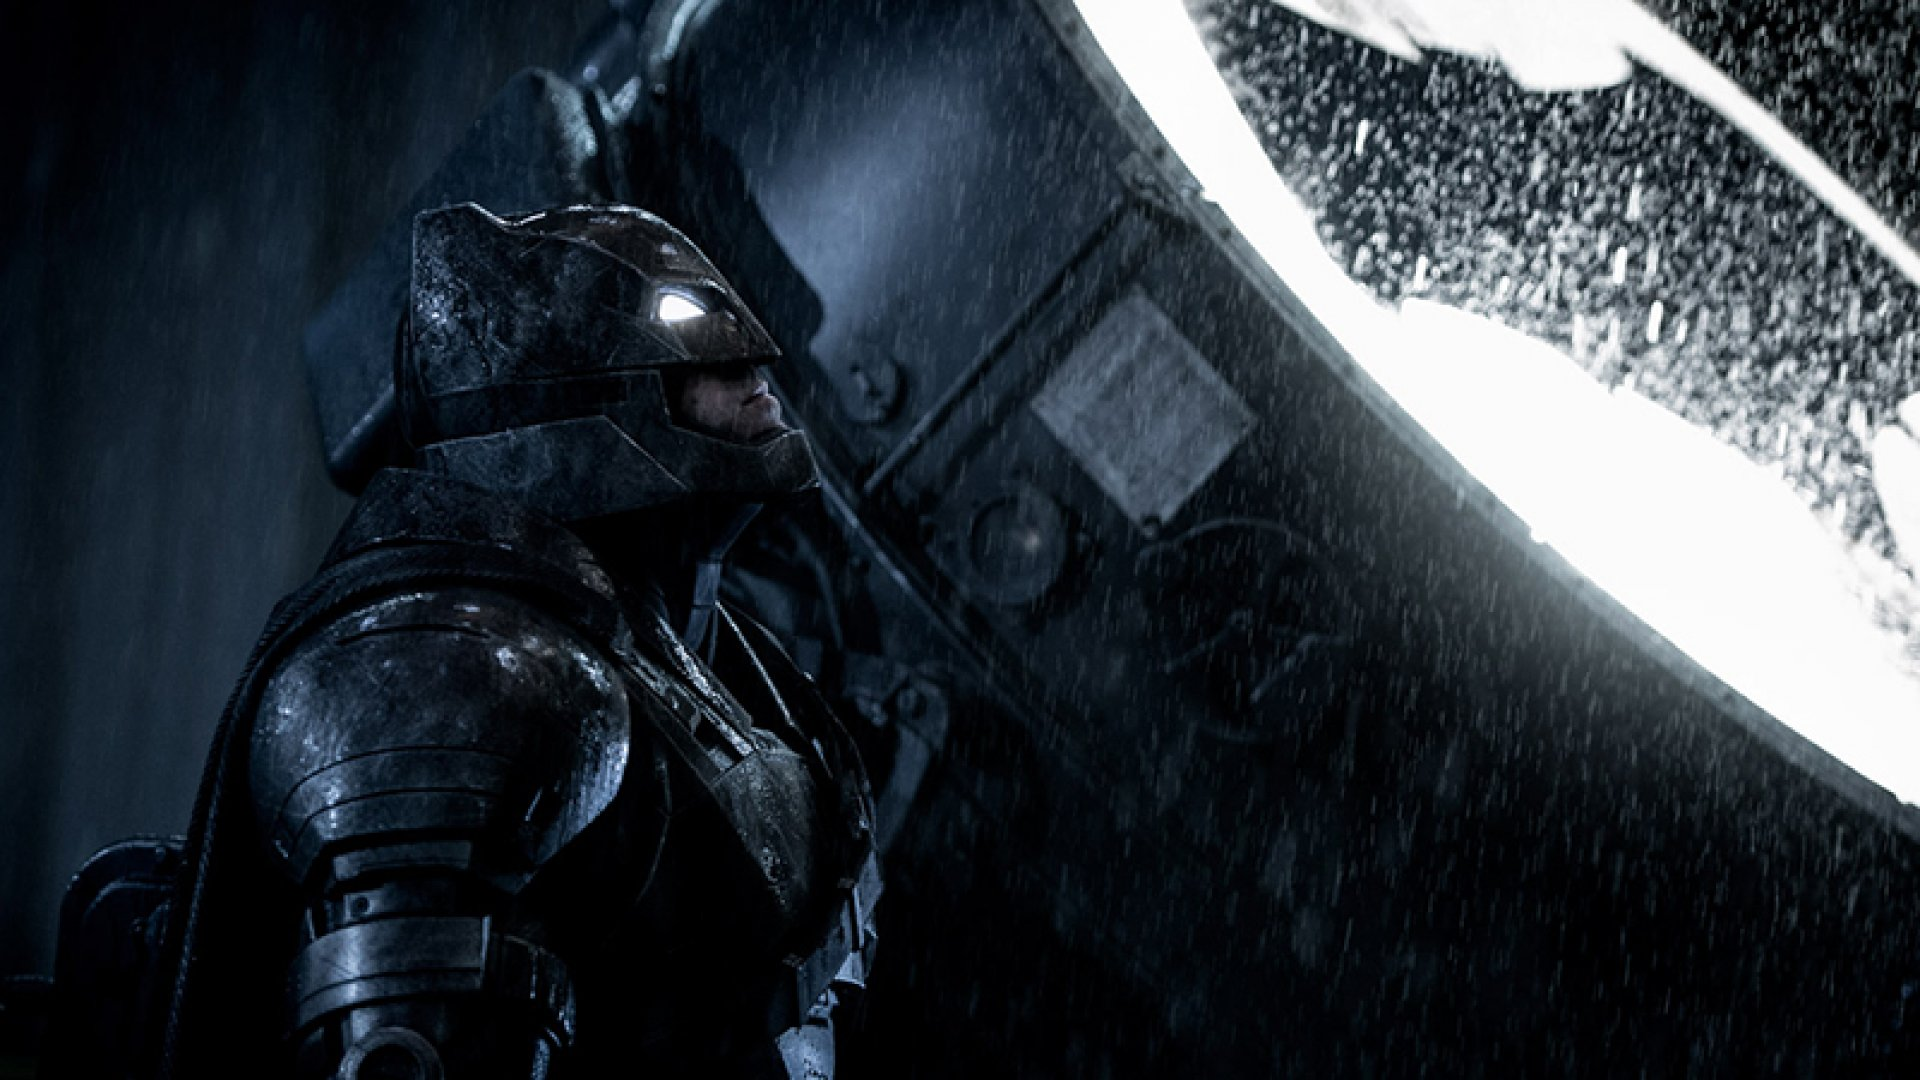 3 Things You Can Learn From Not-So-Stellar Reviews of 'Batman v. Superman'